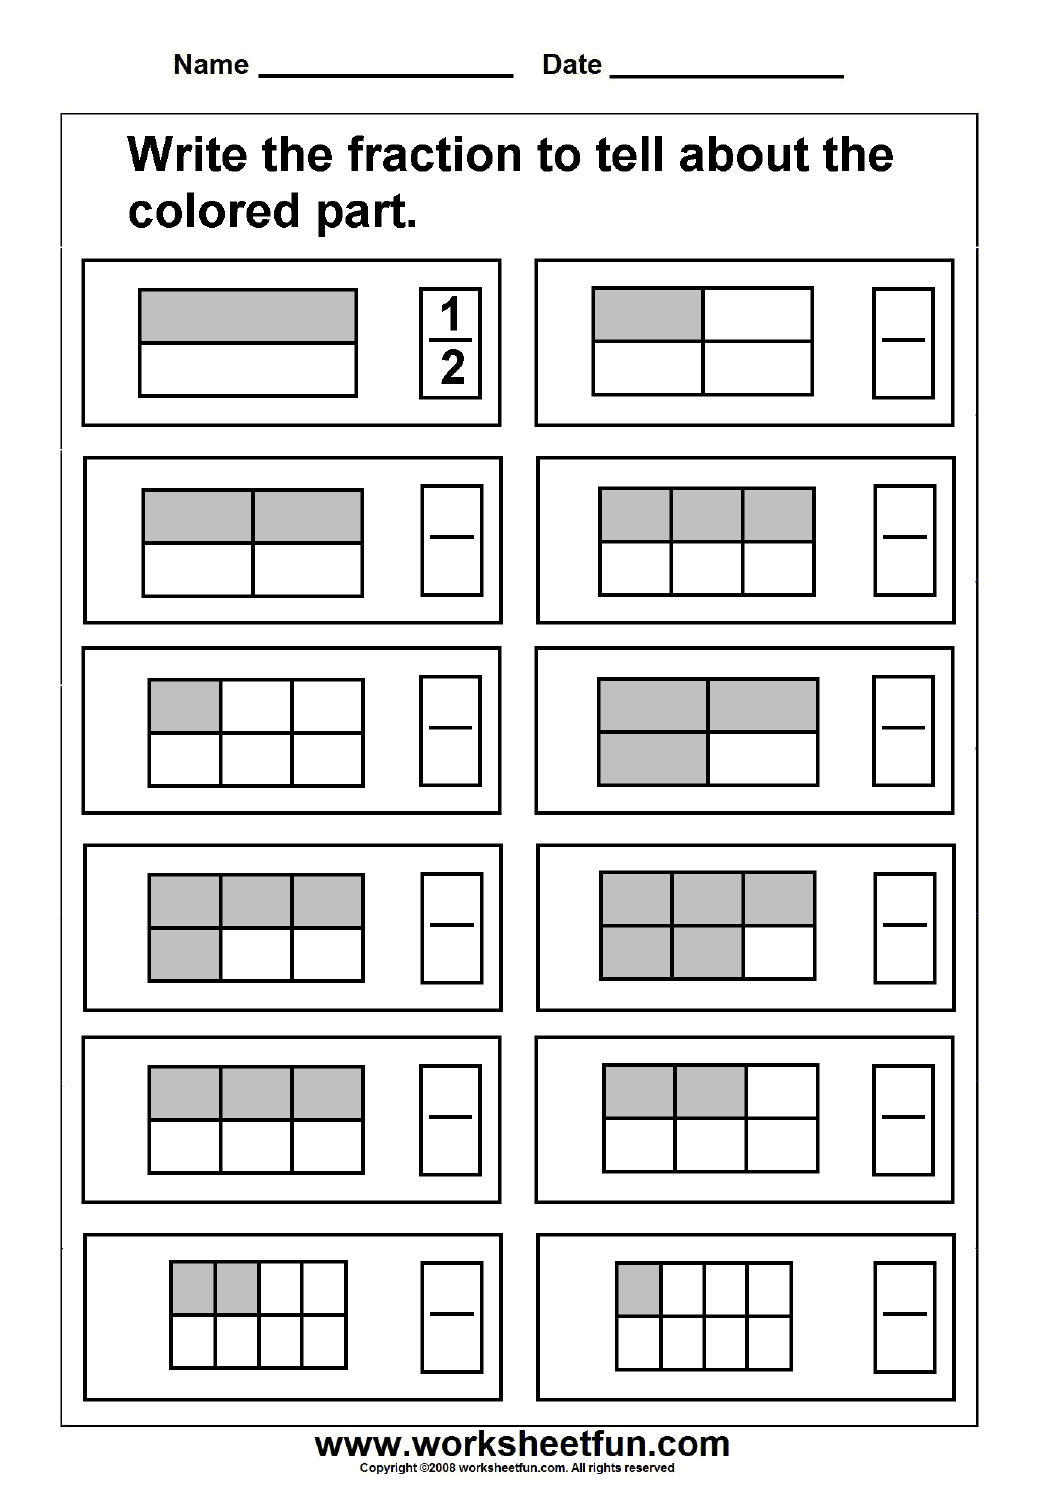 Worksheet Printable Fraction Worksheets fraction free printable worksheets worksheetfun model 3 worksheets